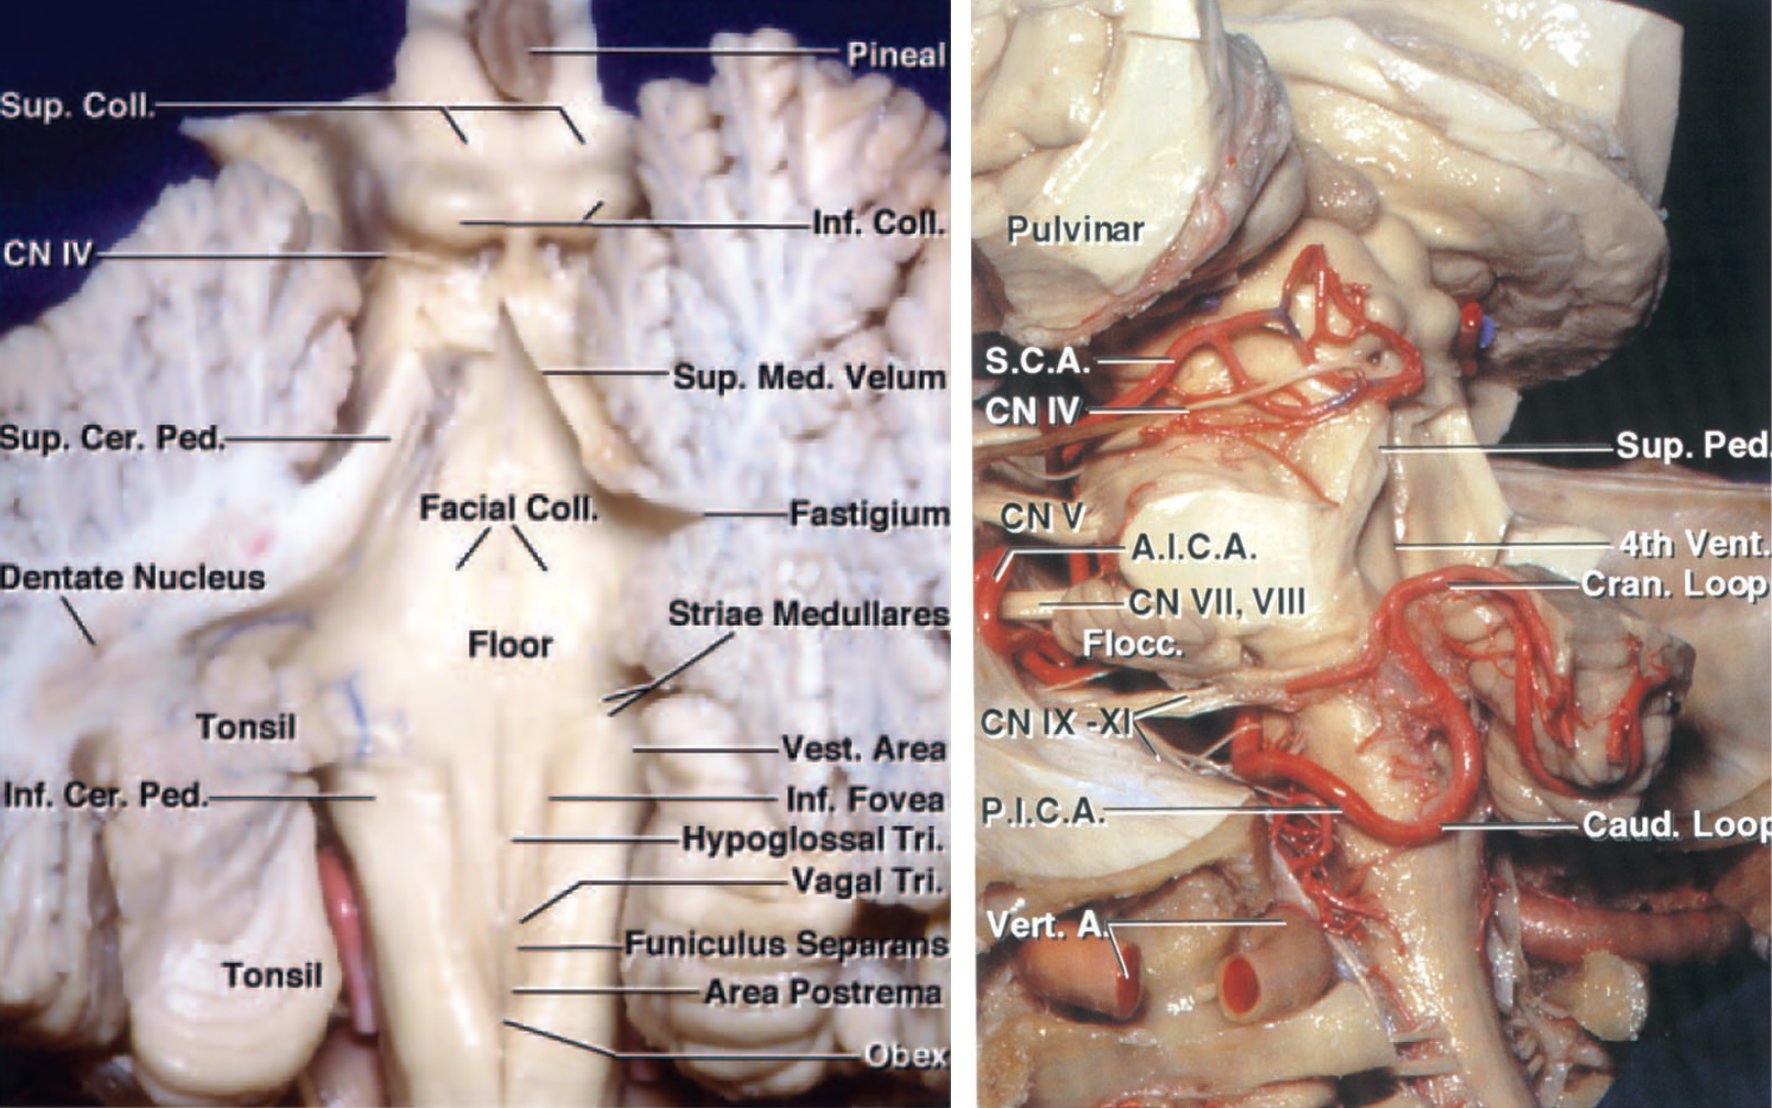 Figure 4: The functional anatomy of the fourth ventricular floor is shown (left image). The route of the superior cerebellar artery (SCA), the anterior inferior cerebellar artery (AICA) and the posterior inferior cerebellar artery (PICA) after removal of the cerebellum is demonstrated (right image—oblique view)(Images courtesy of AL Rhoton, Jr).